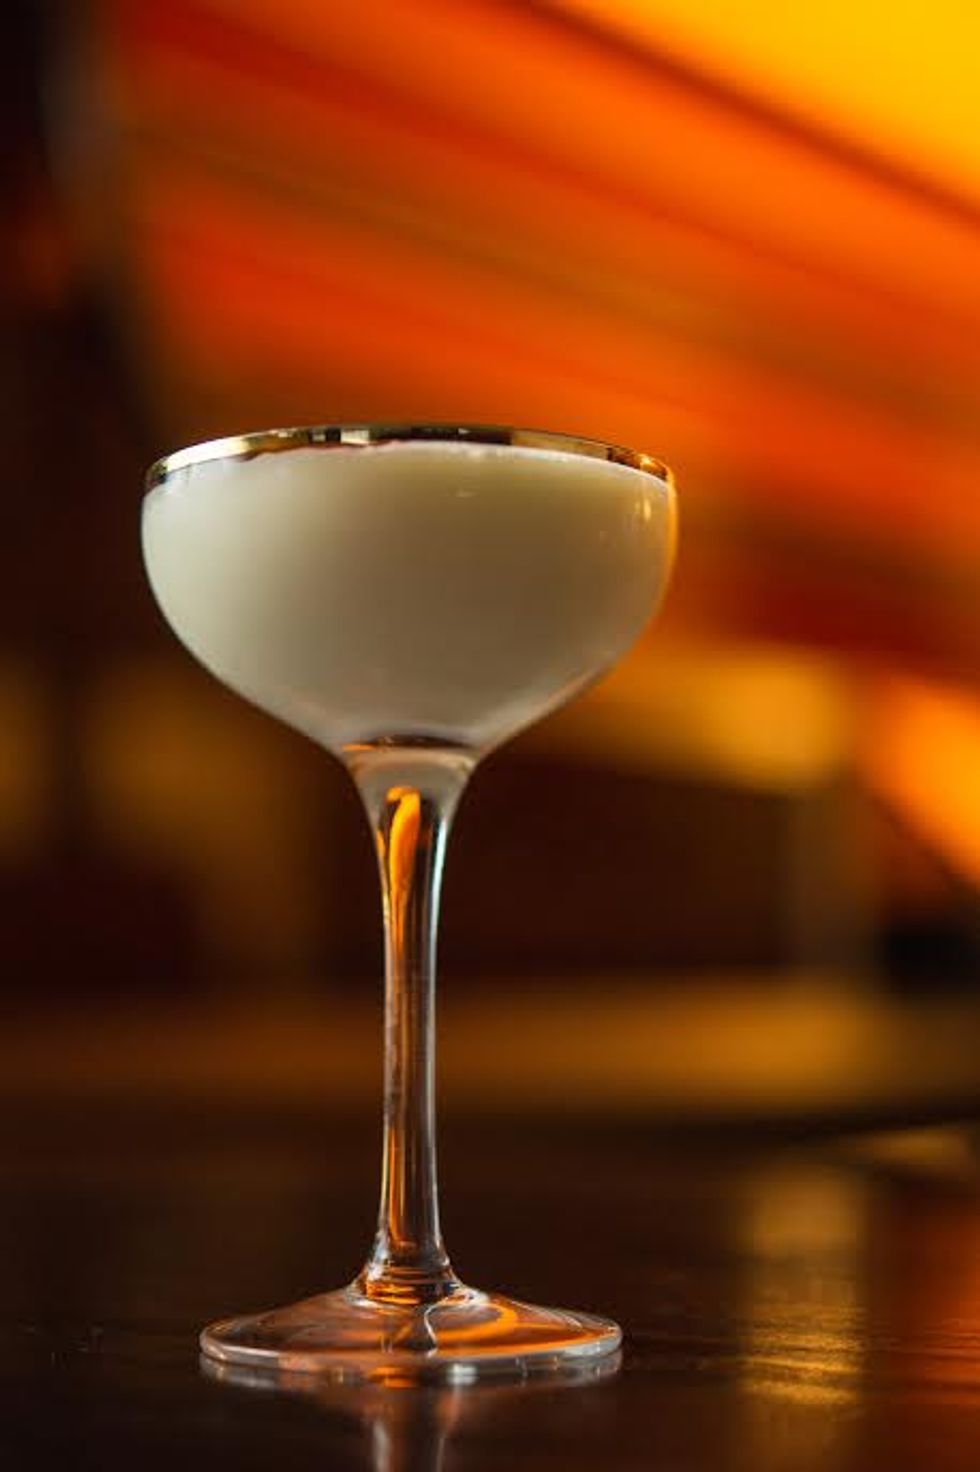 Cocktail of the Week: The Golden Cadillac at Golden Cadillac